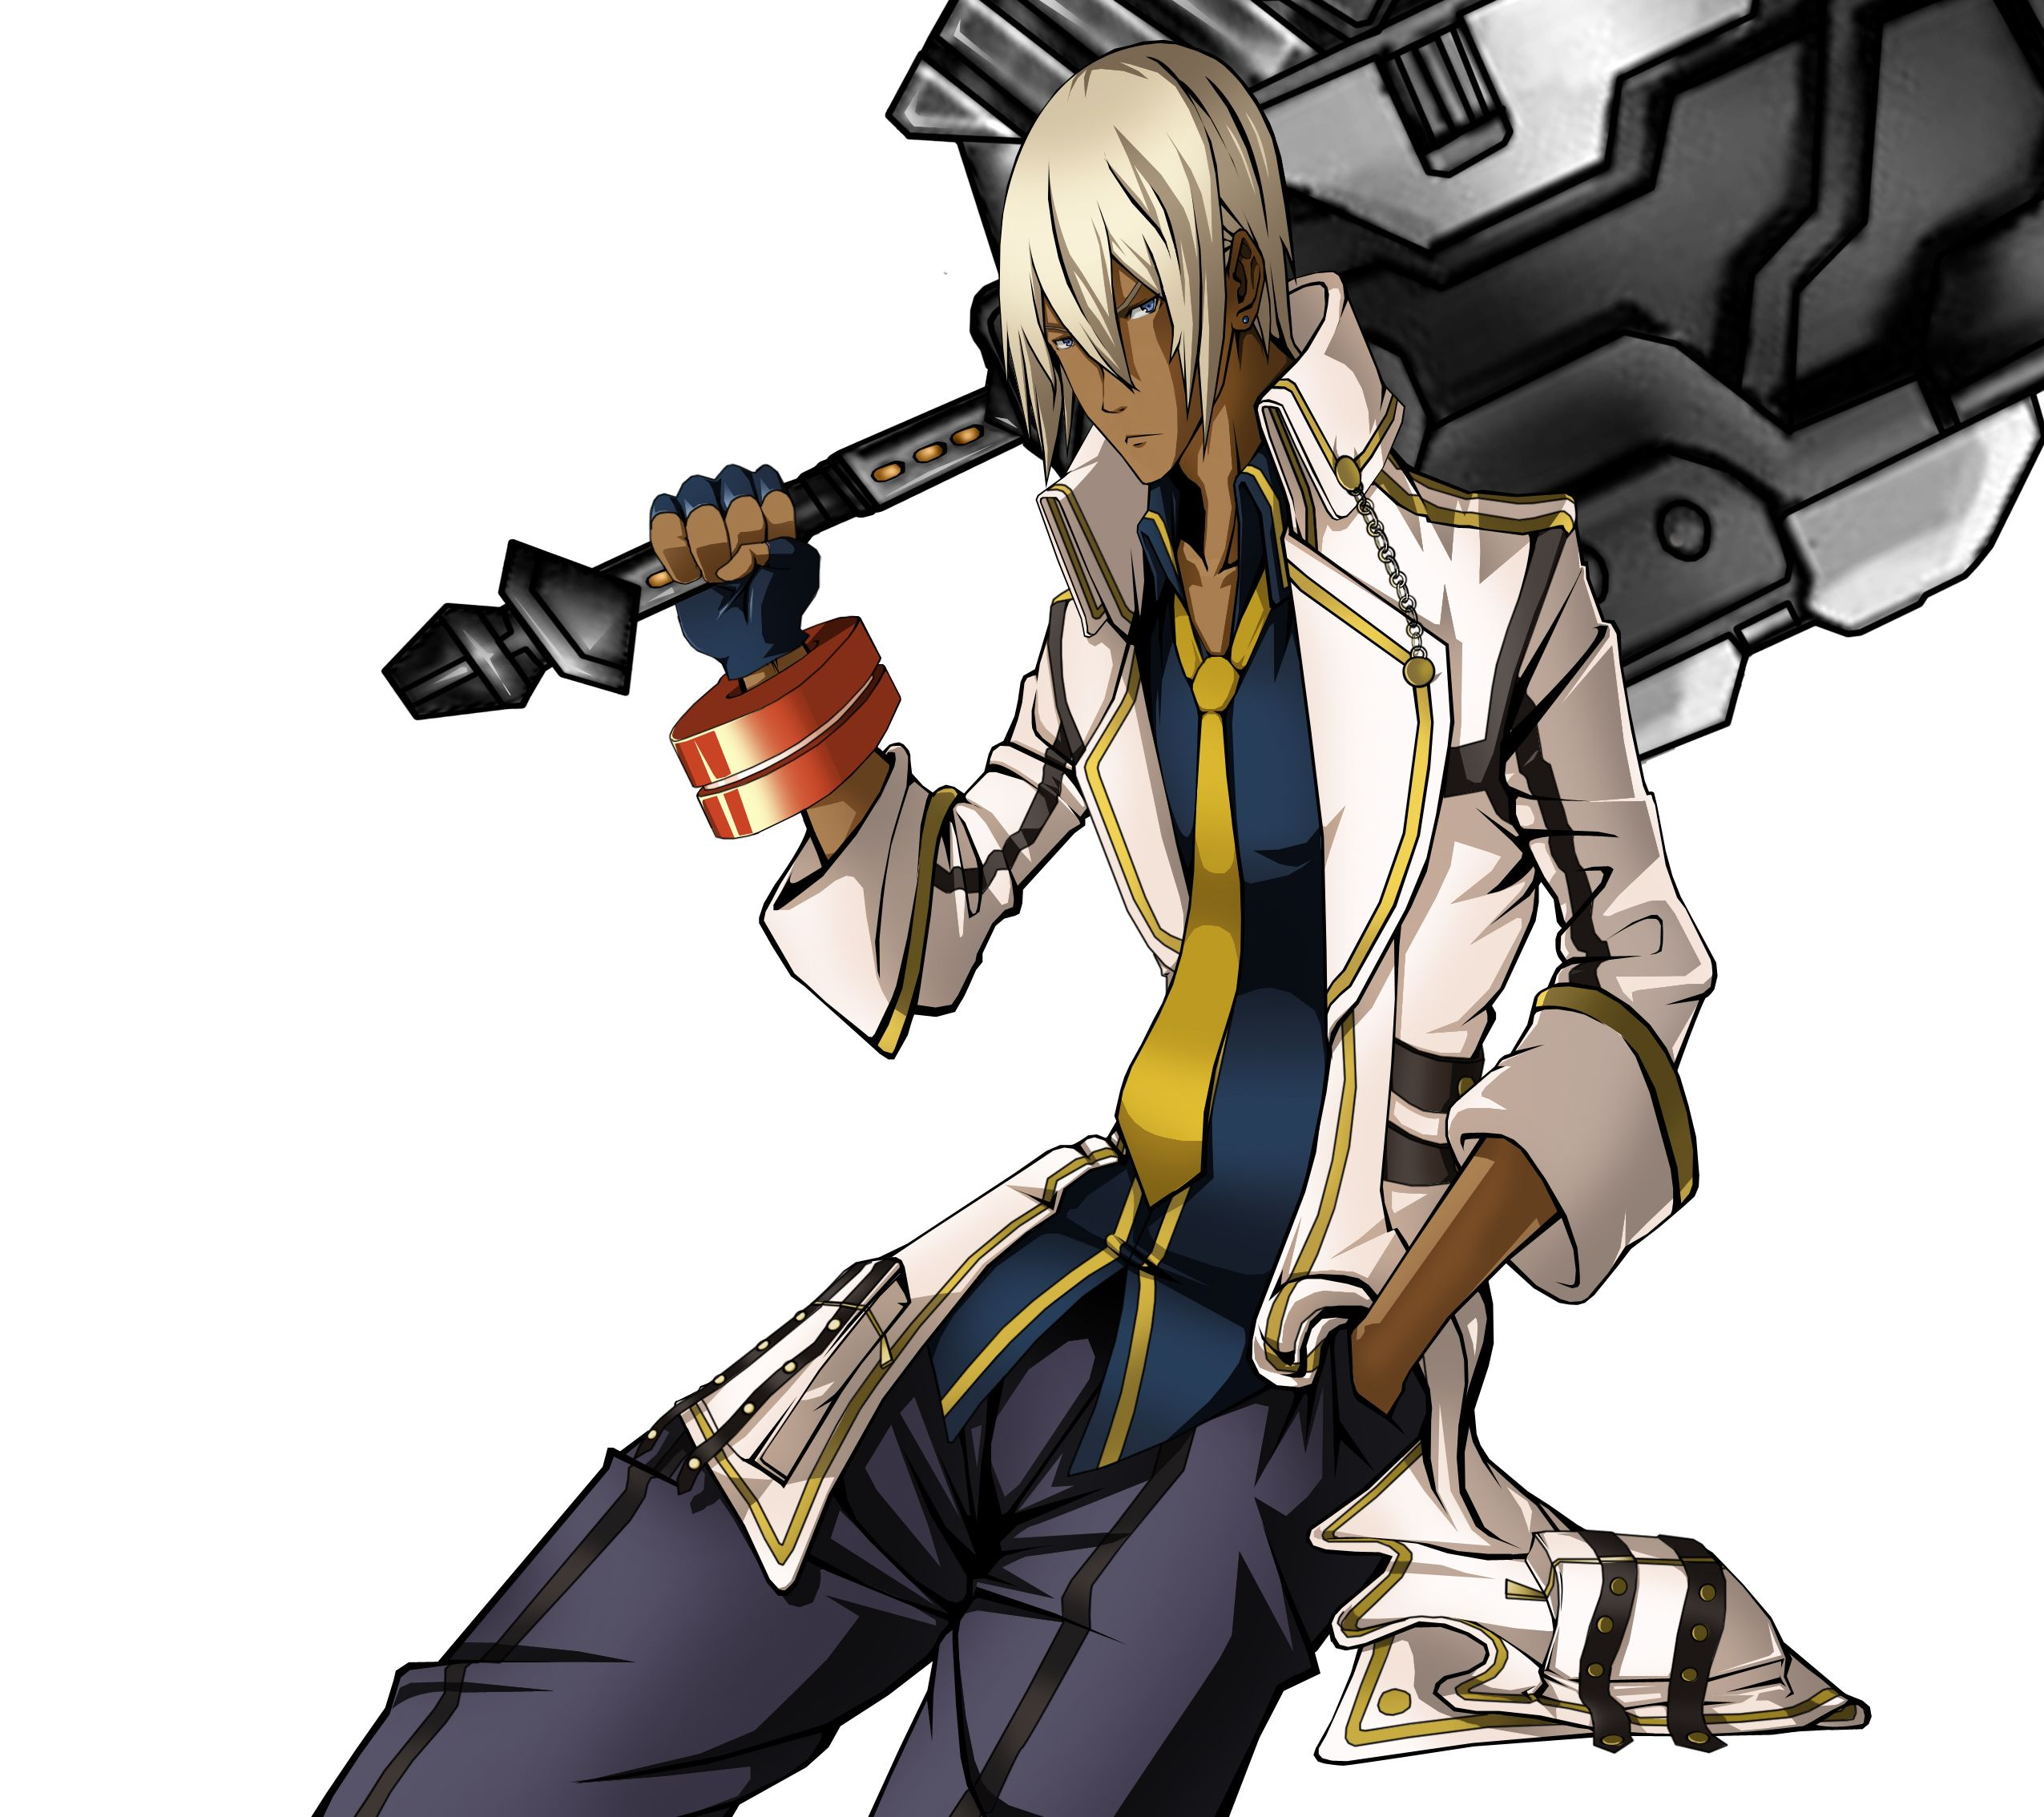 soma schicksal god eater 2 Google Search Concept Art